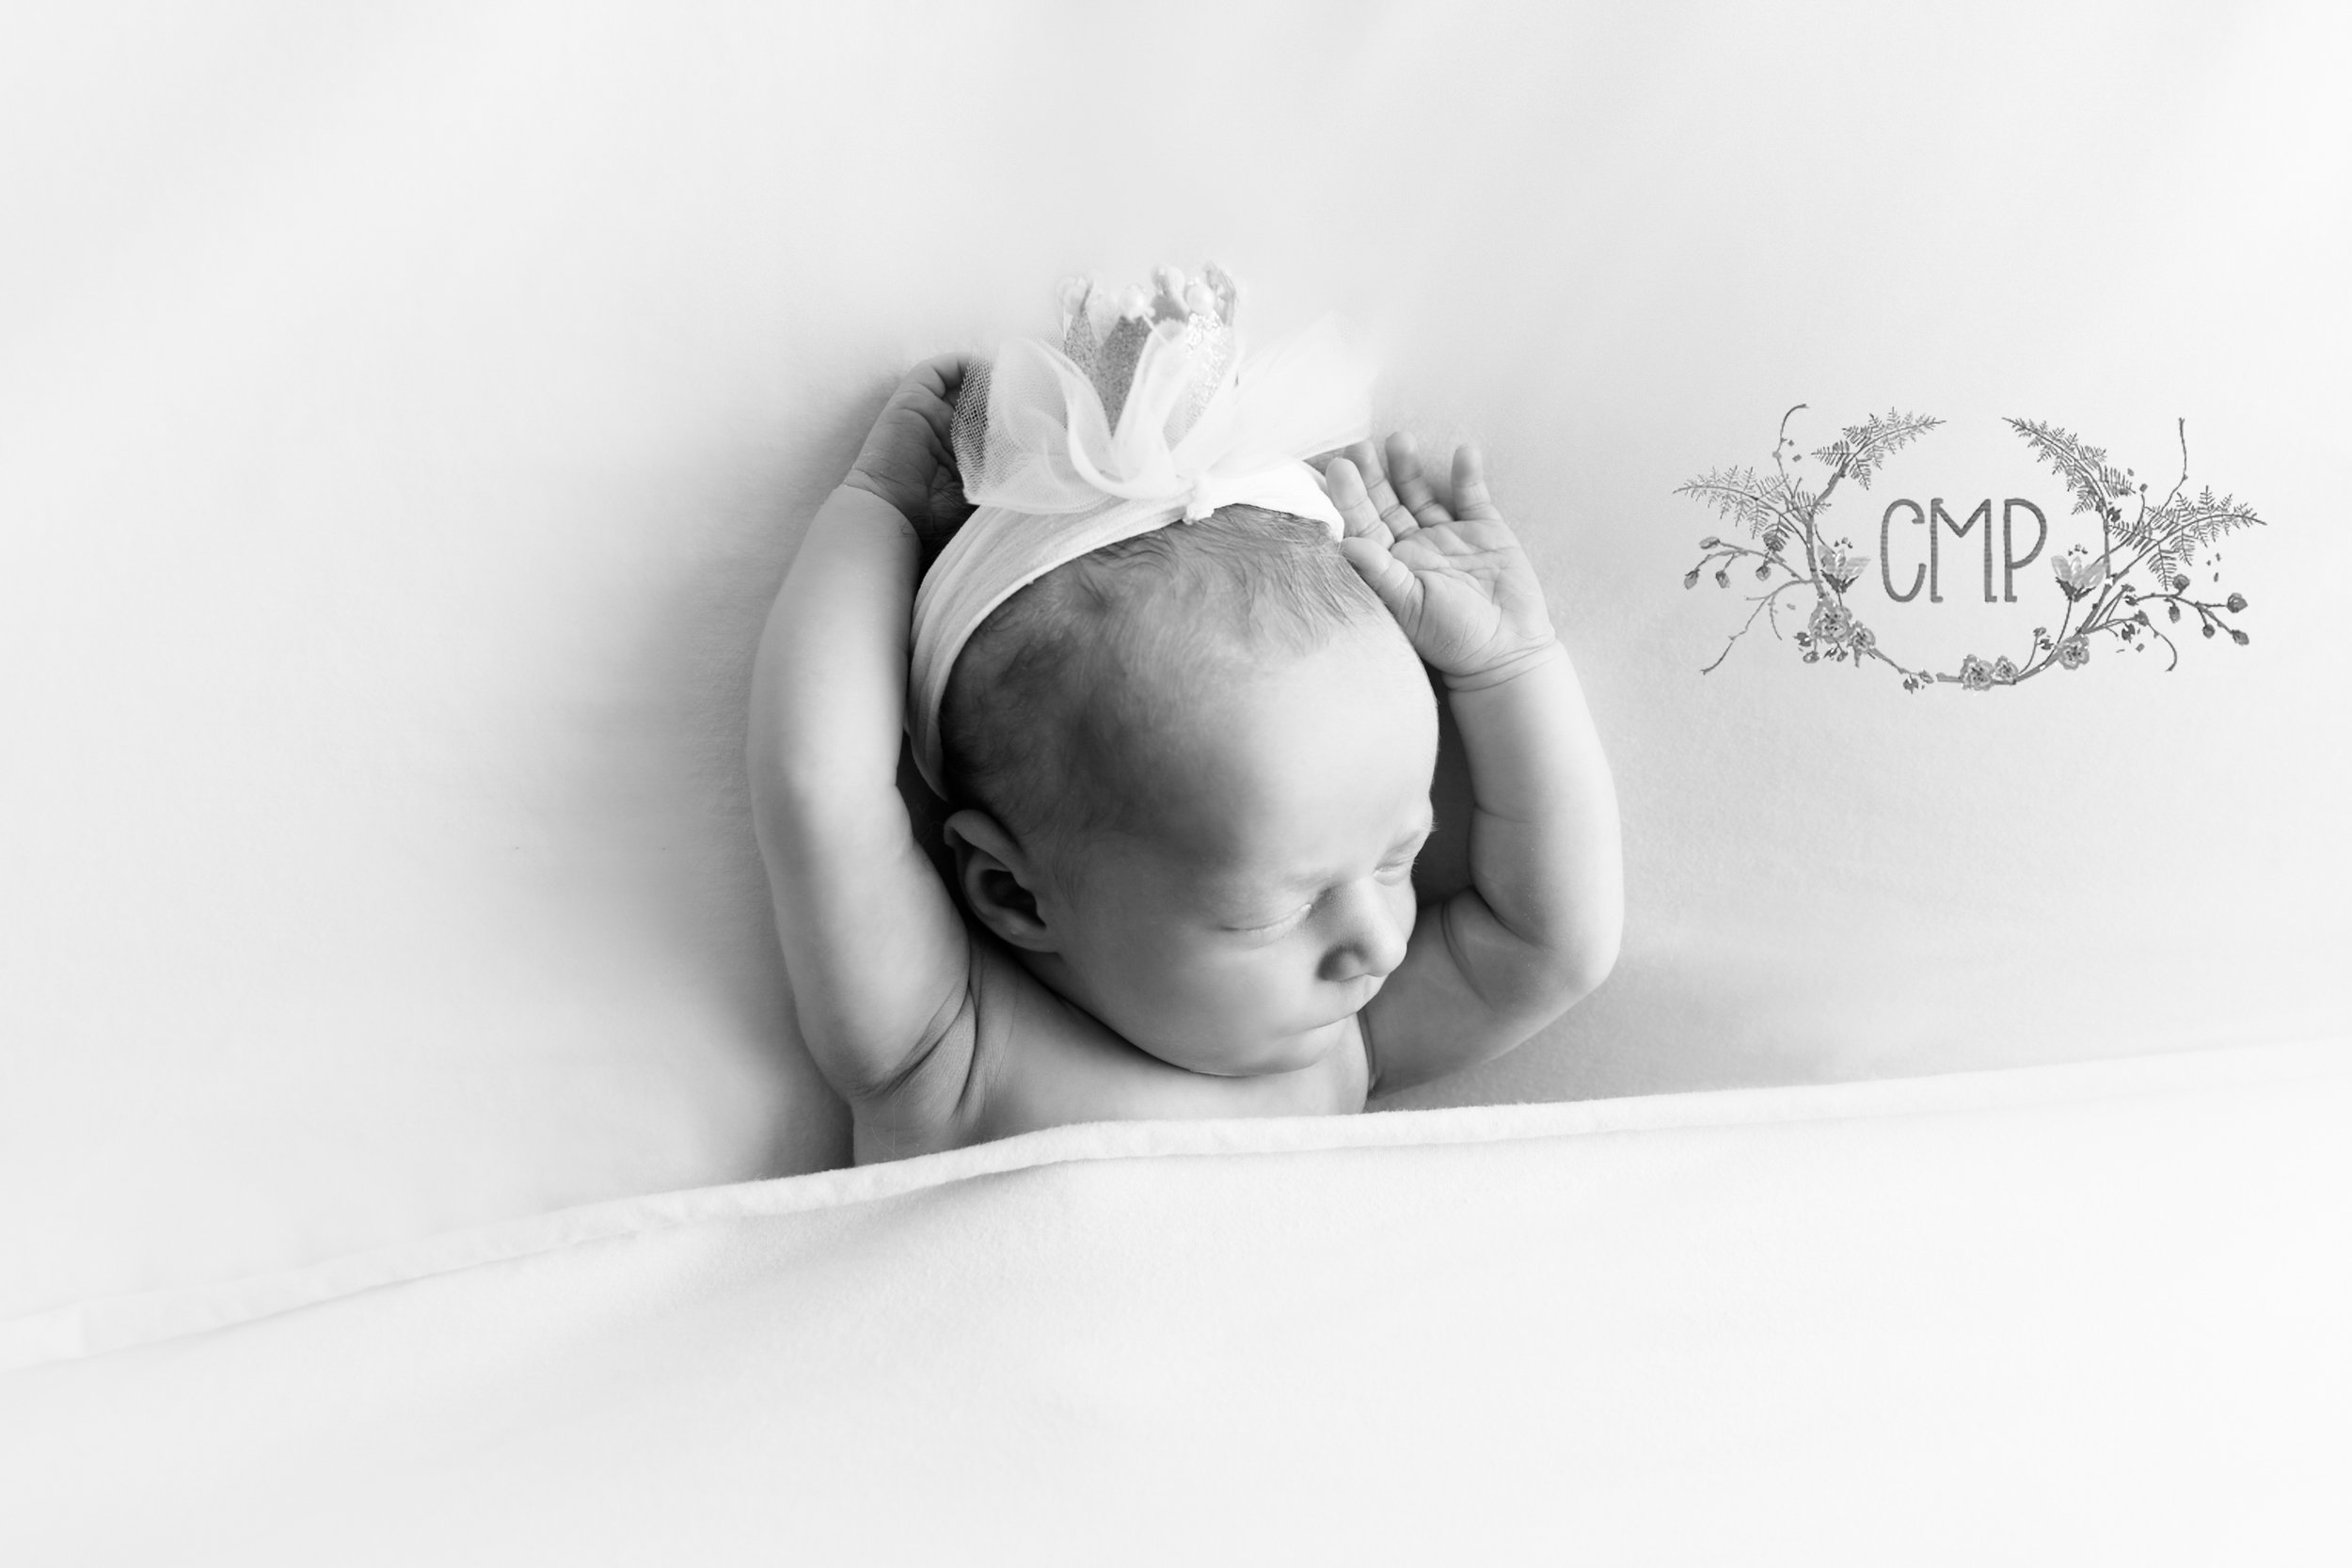 40_Shea_Raelyn_newborn-Edit-2.jpg